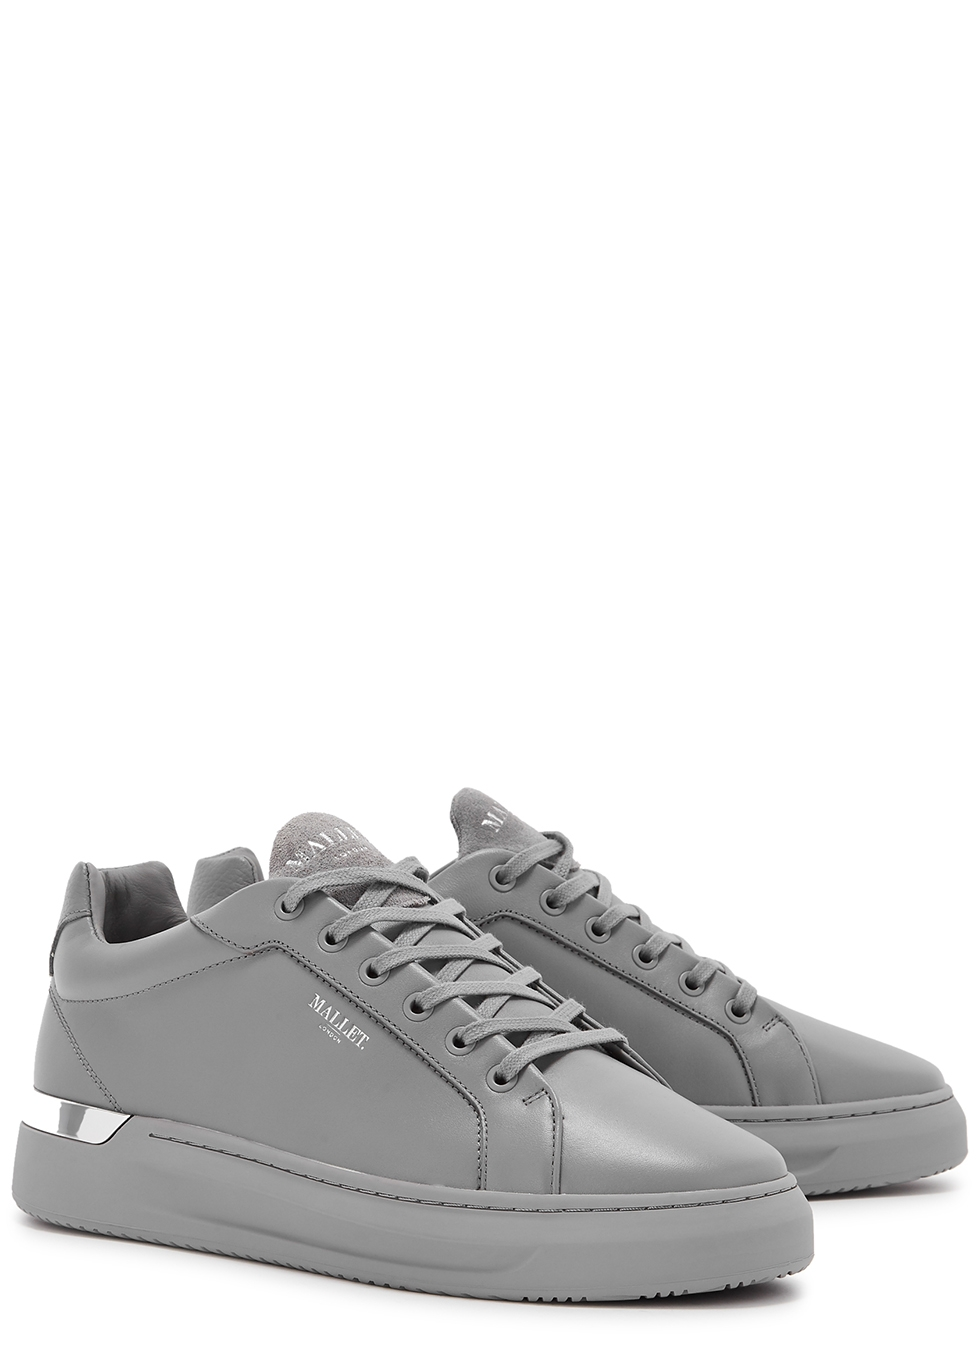 Mallet GRFTR grey leather sneakers